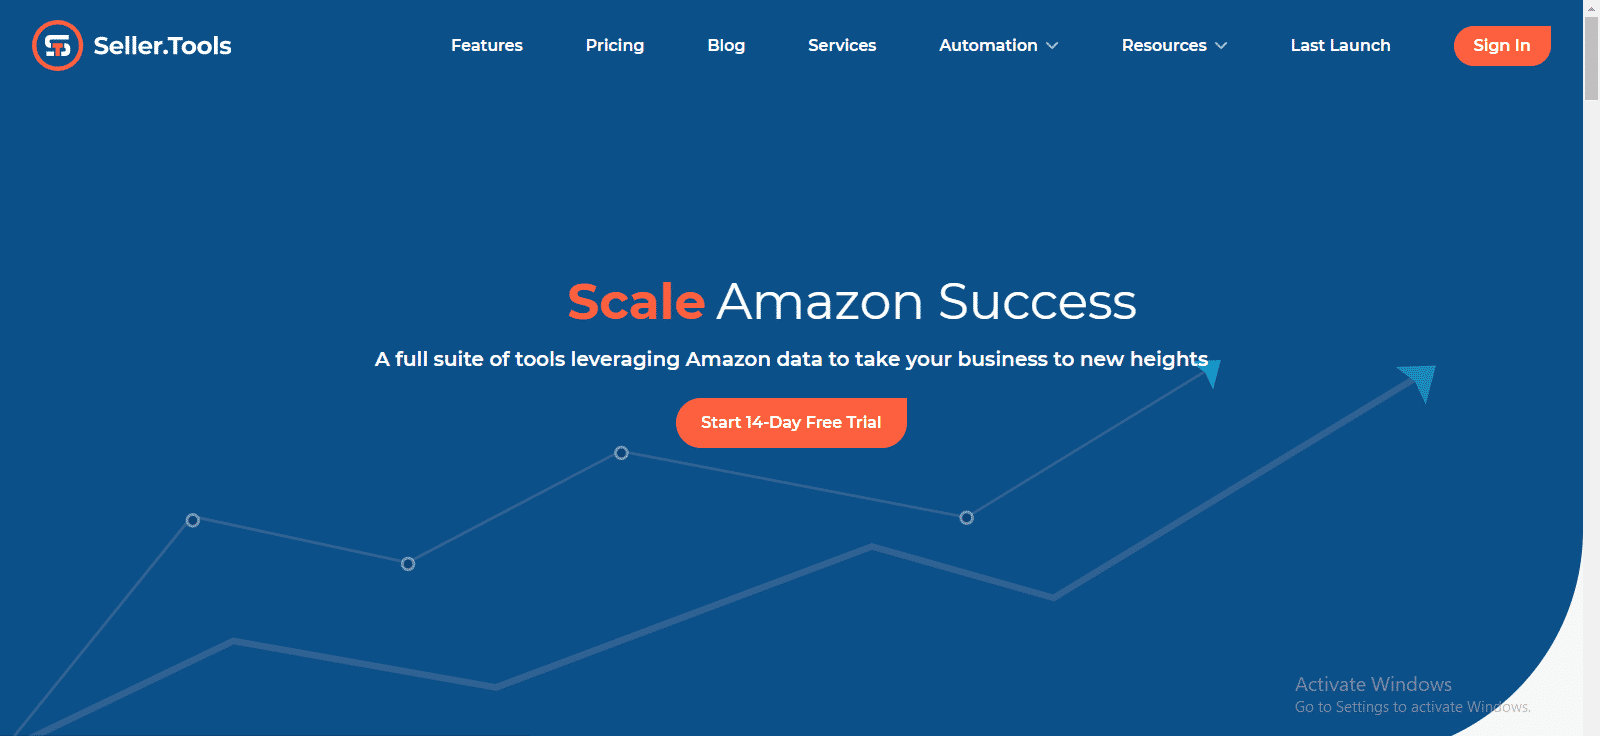 Amazon Software Review: Top 25 Best Amazon software for 2021 9